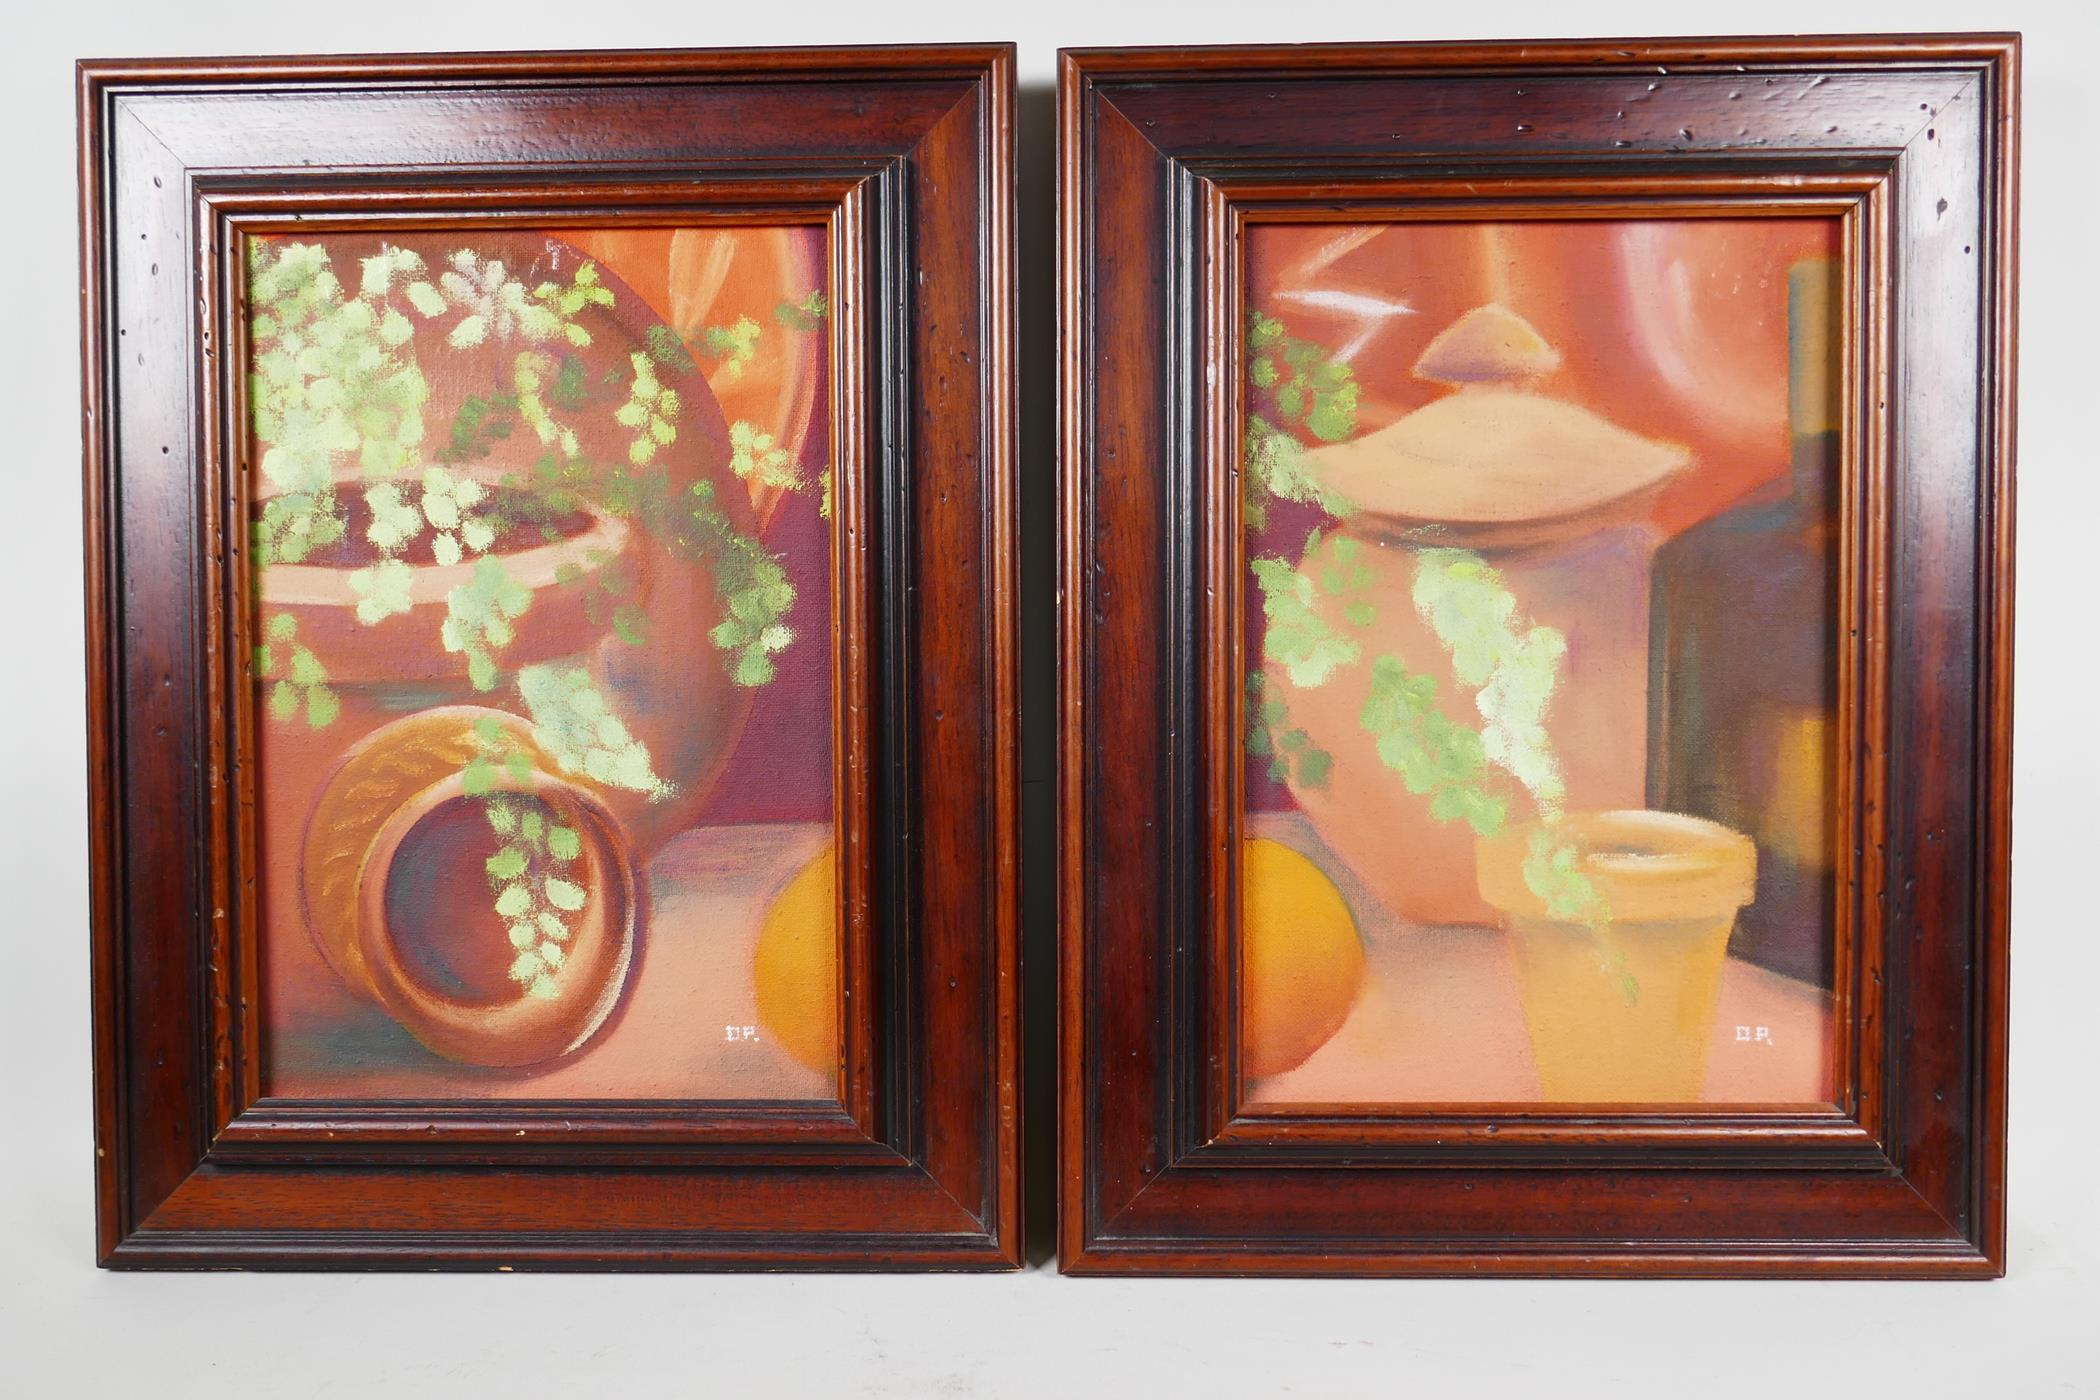 Dara Park (contemporary British), a pair of still lifes featuring terracotta pots and foliage, - Image 2 of 6